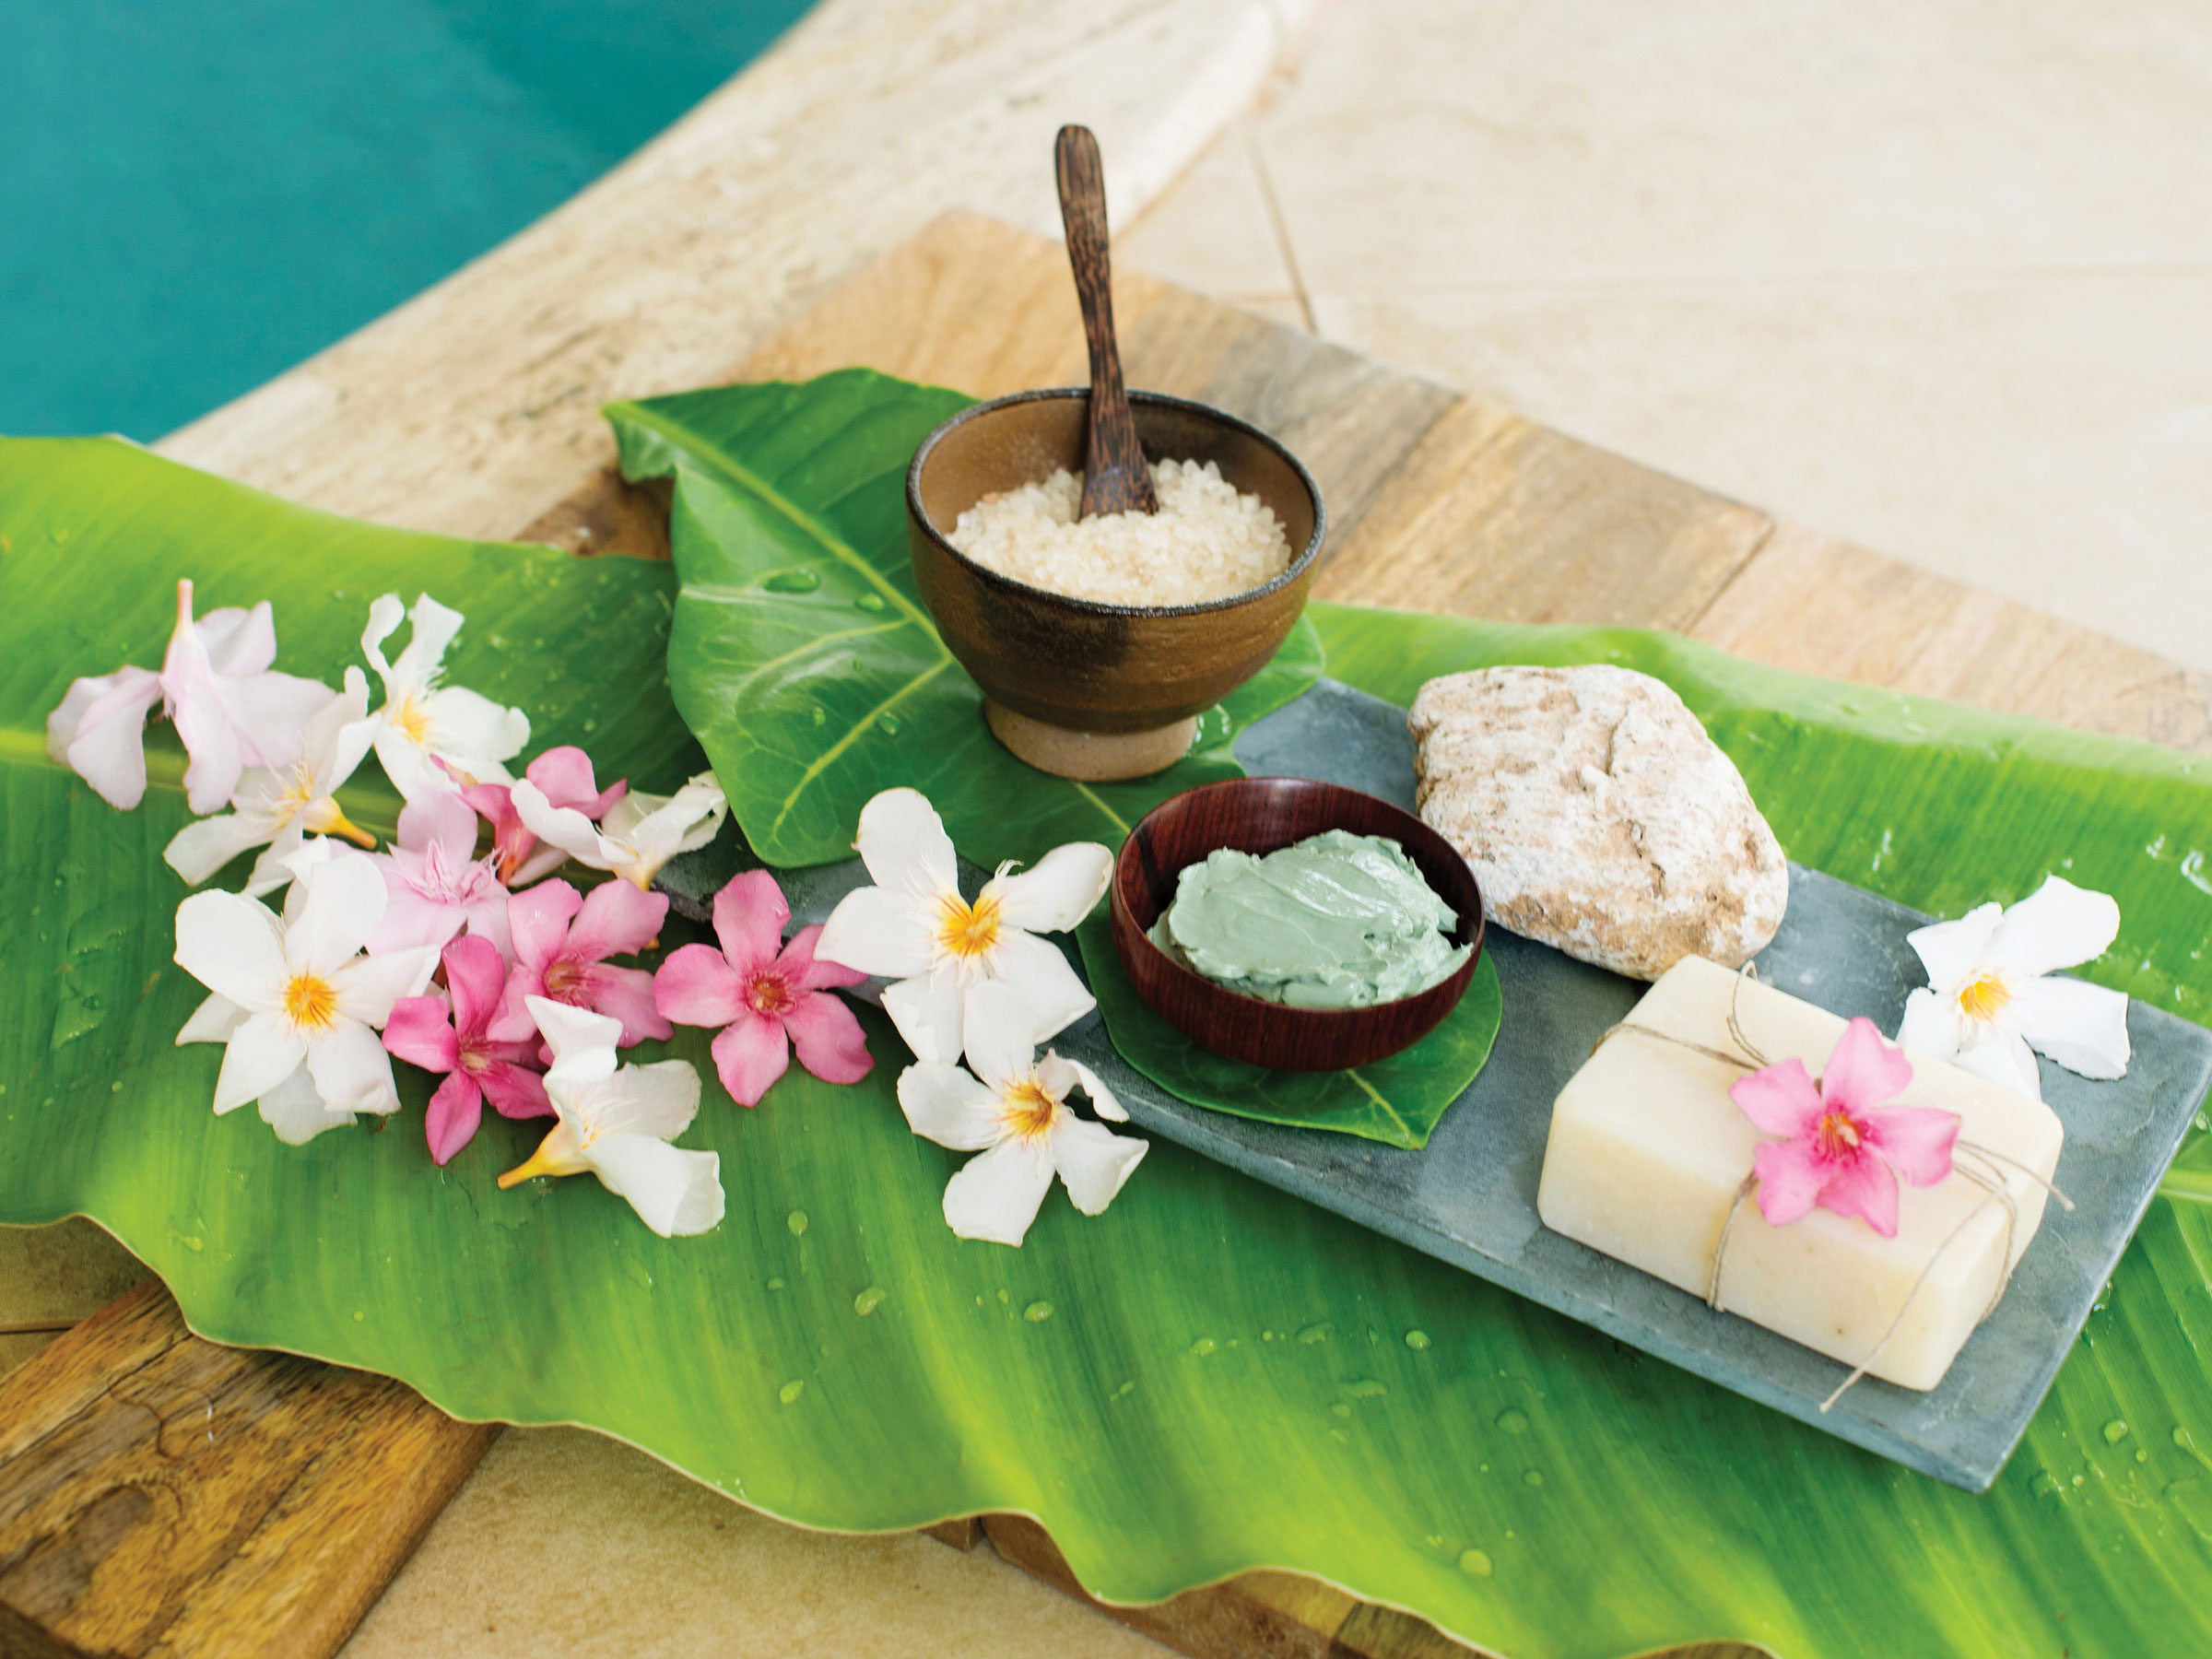 Spa Treatment Ingredients